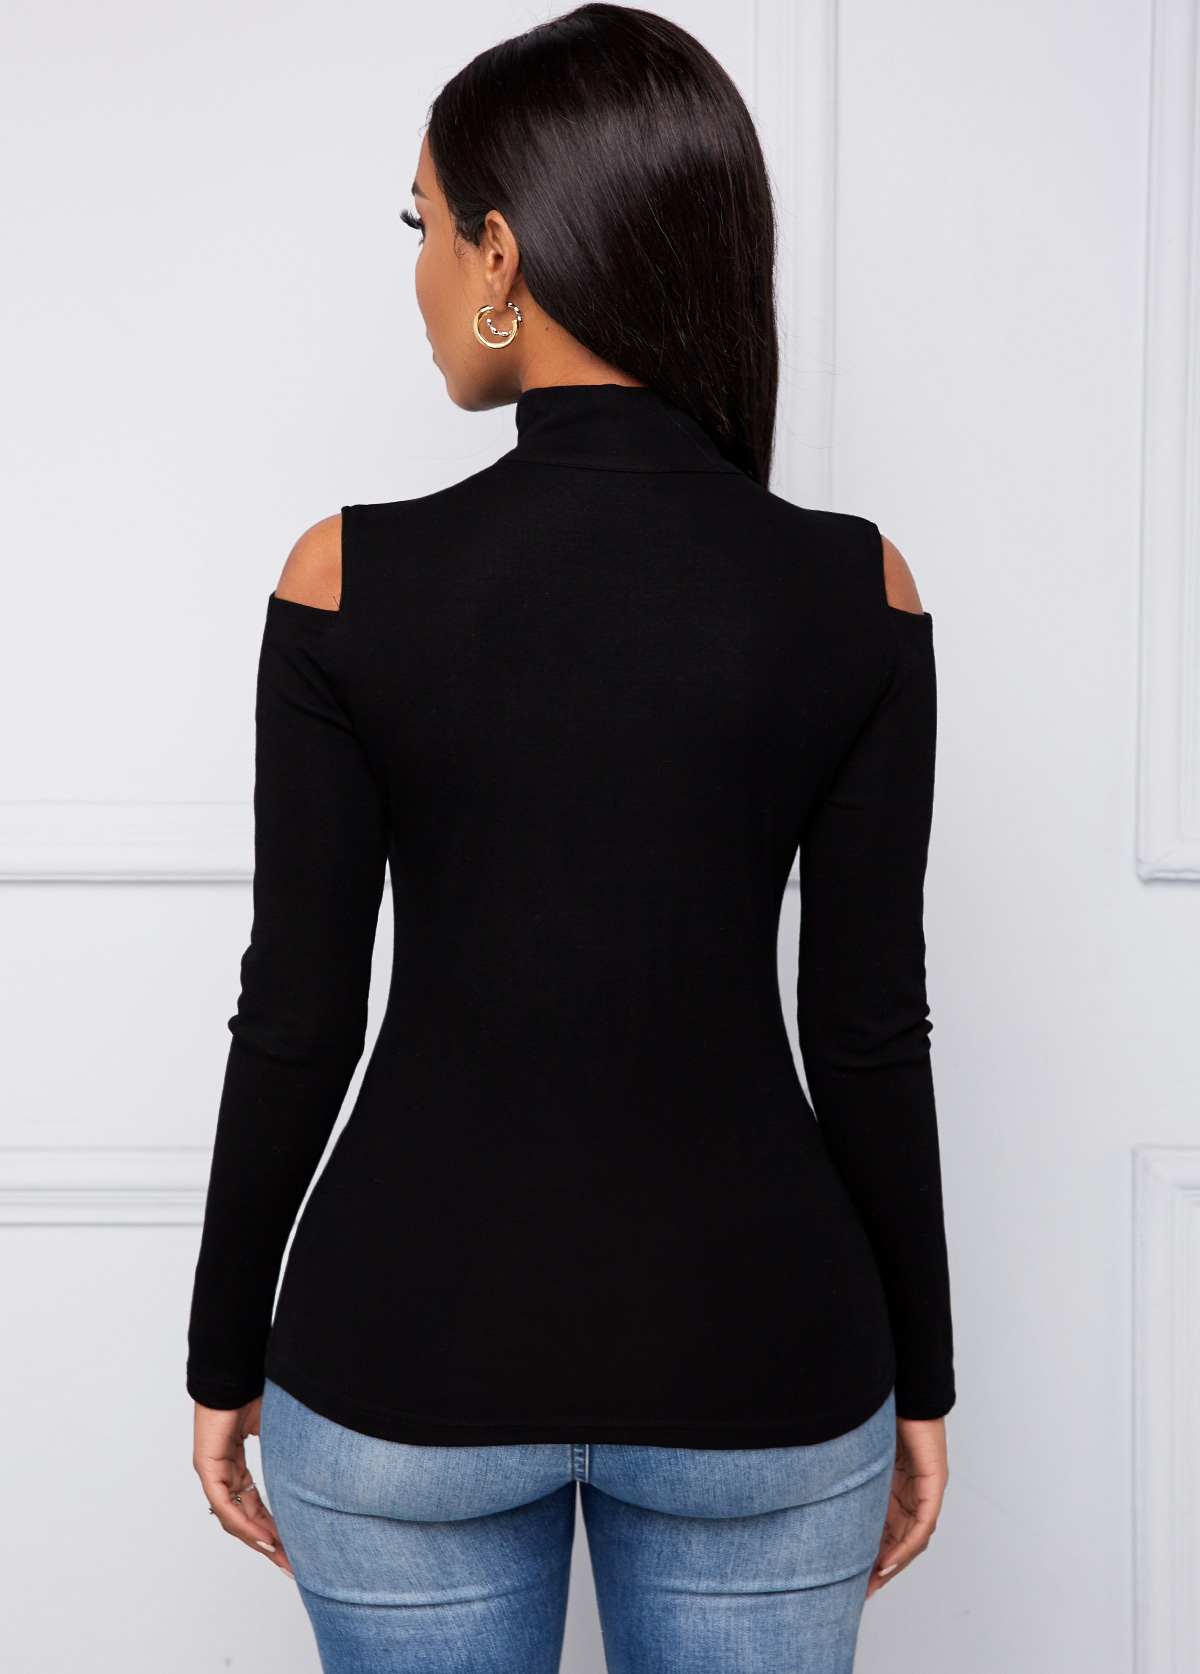 Long Sleeve Cold Shoulder Quarter Zip T Shirt